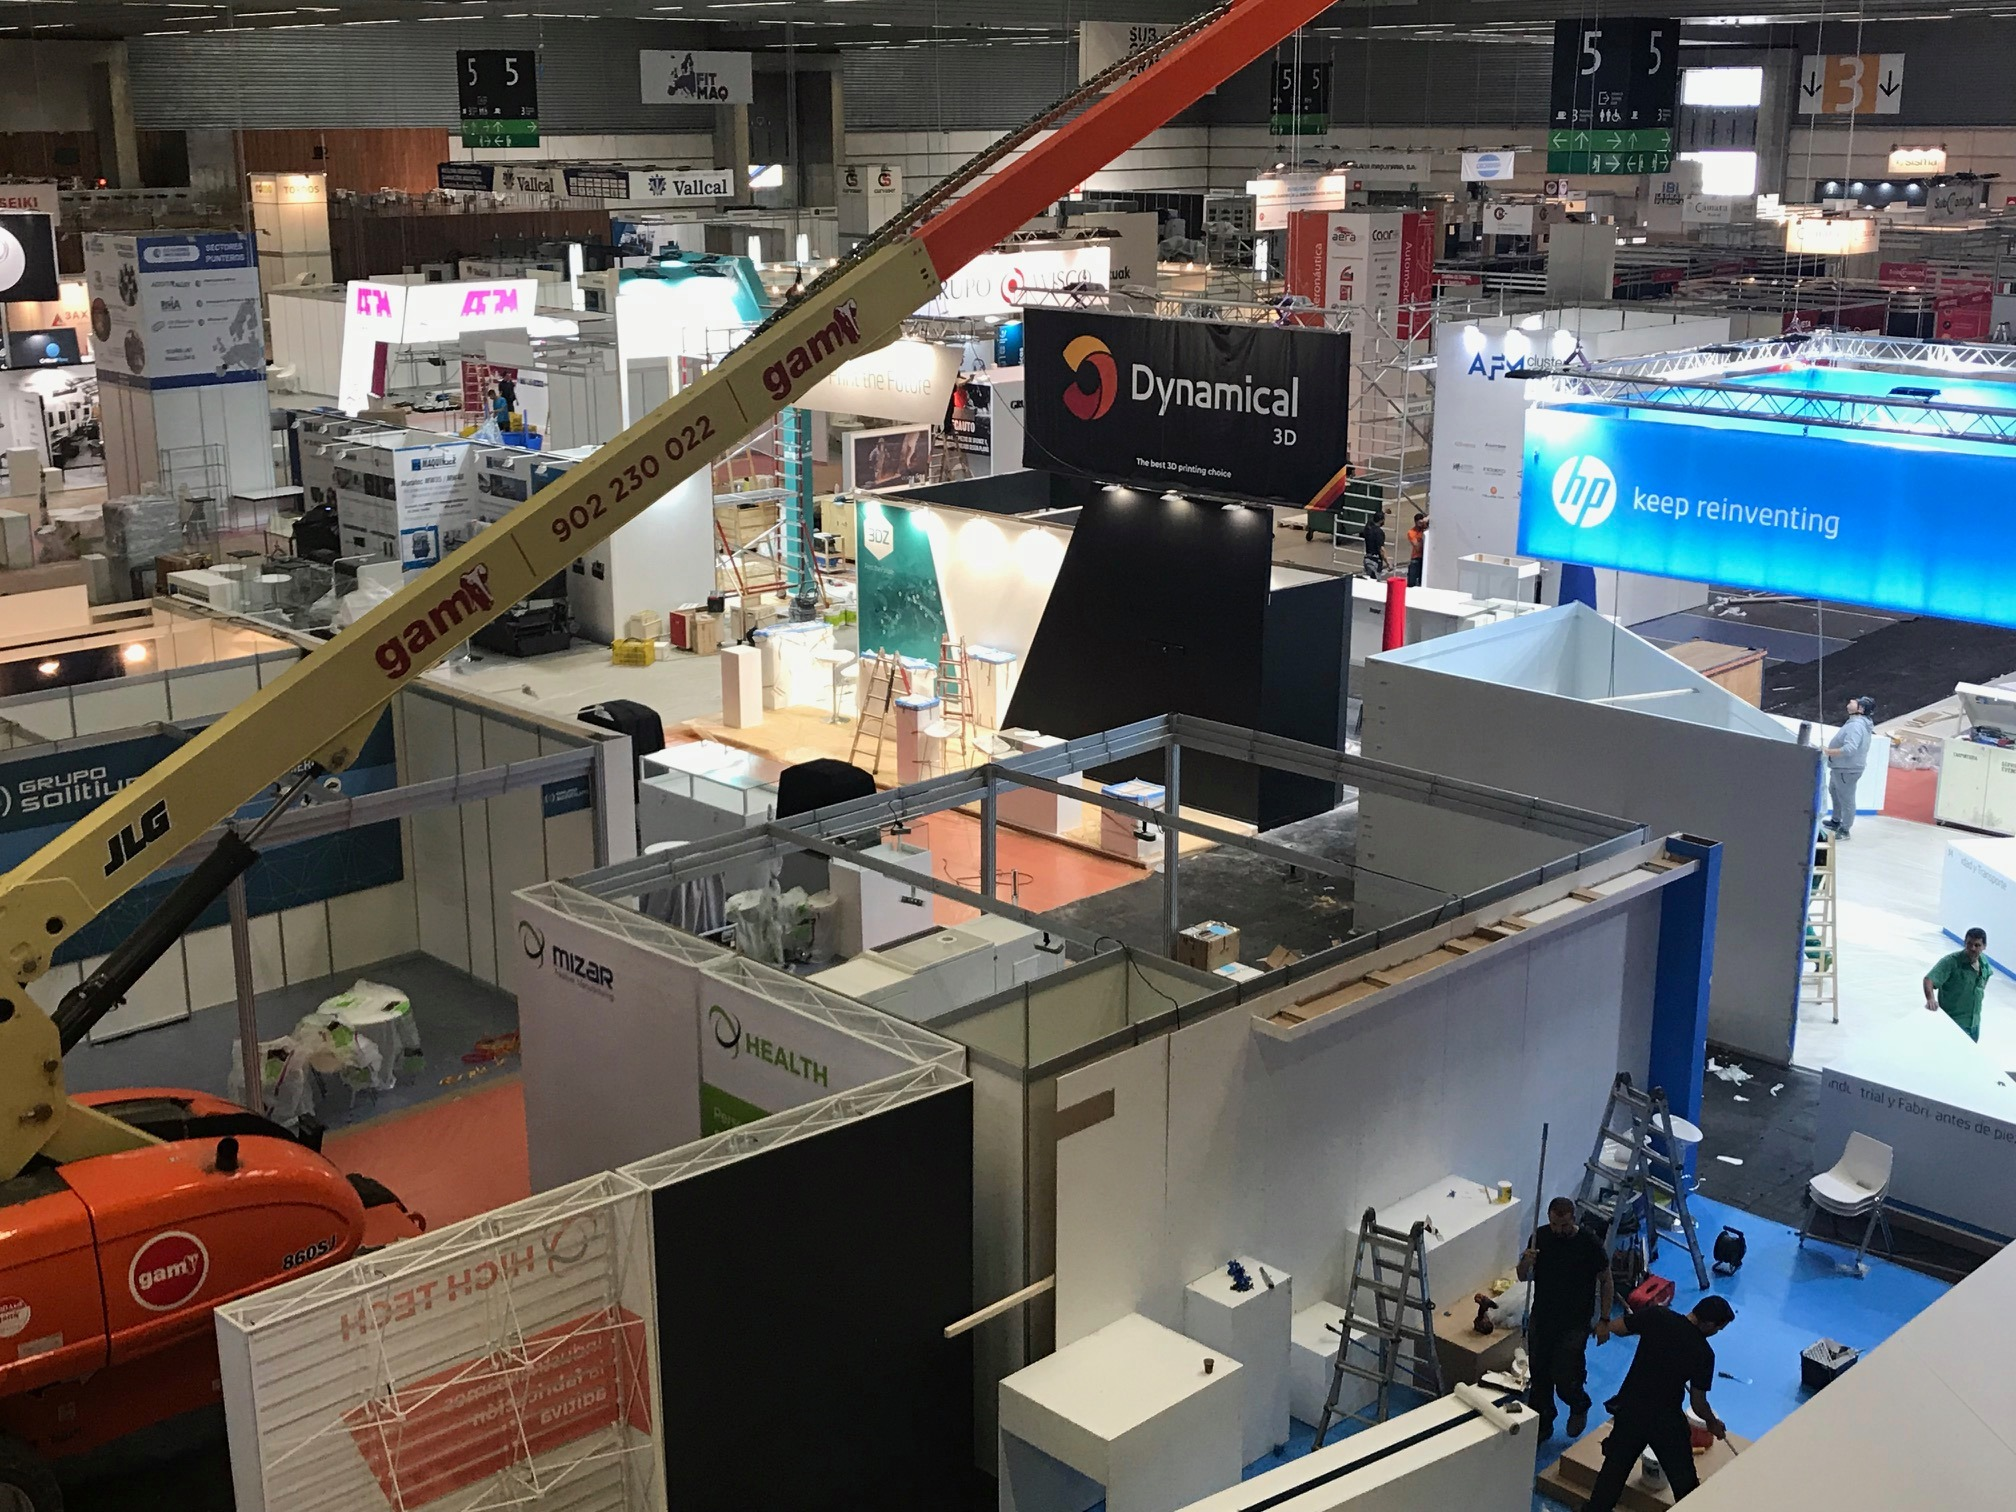 Preparations ongoing at ADDIT3D 2019